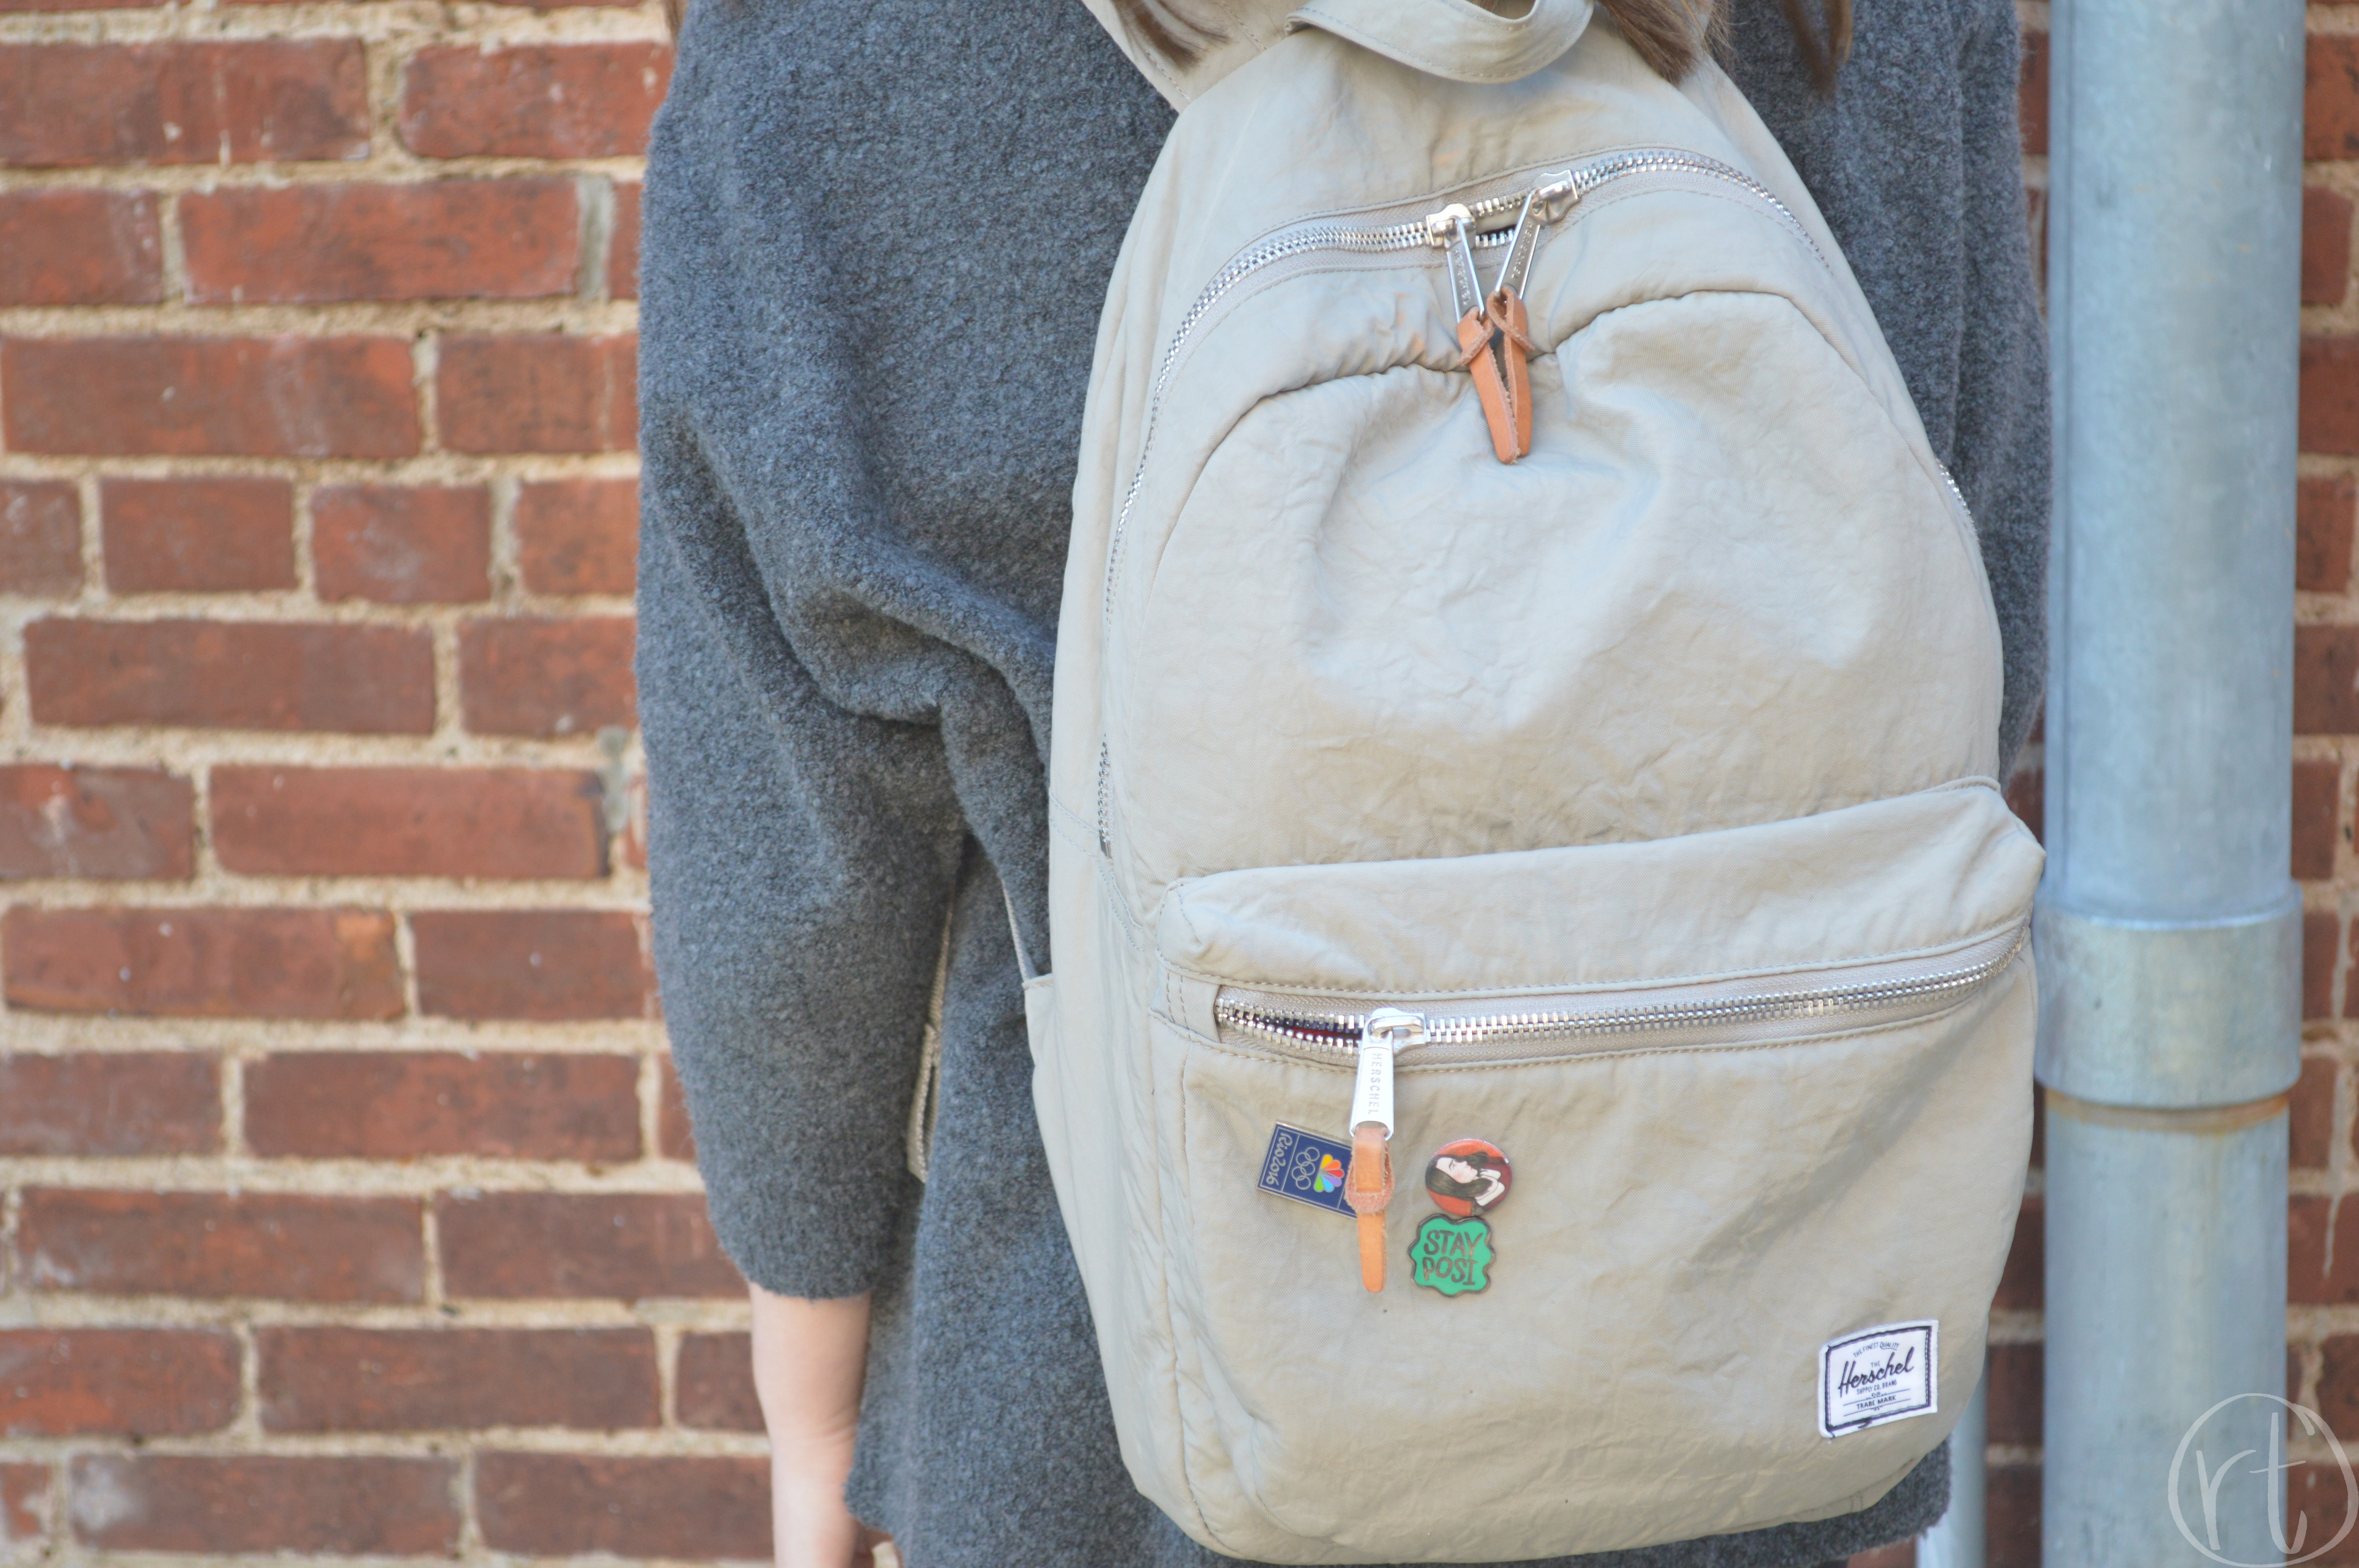 how-to-wear-a-travel-backpack-herschel-pins-round-trip-travel